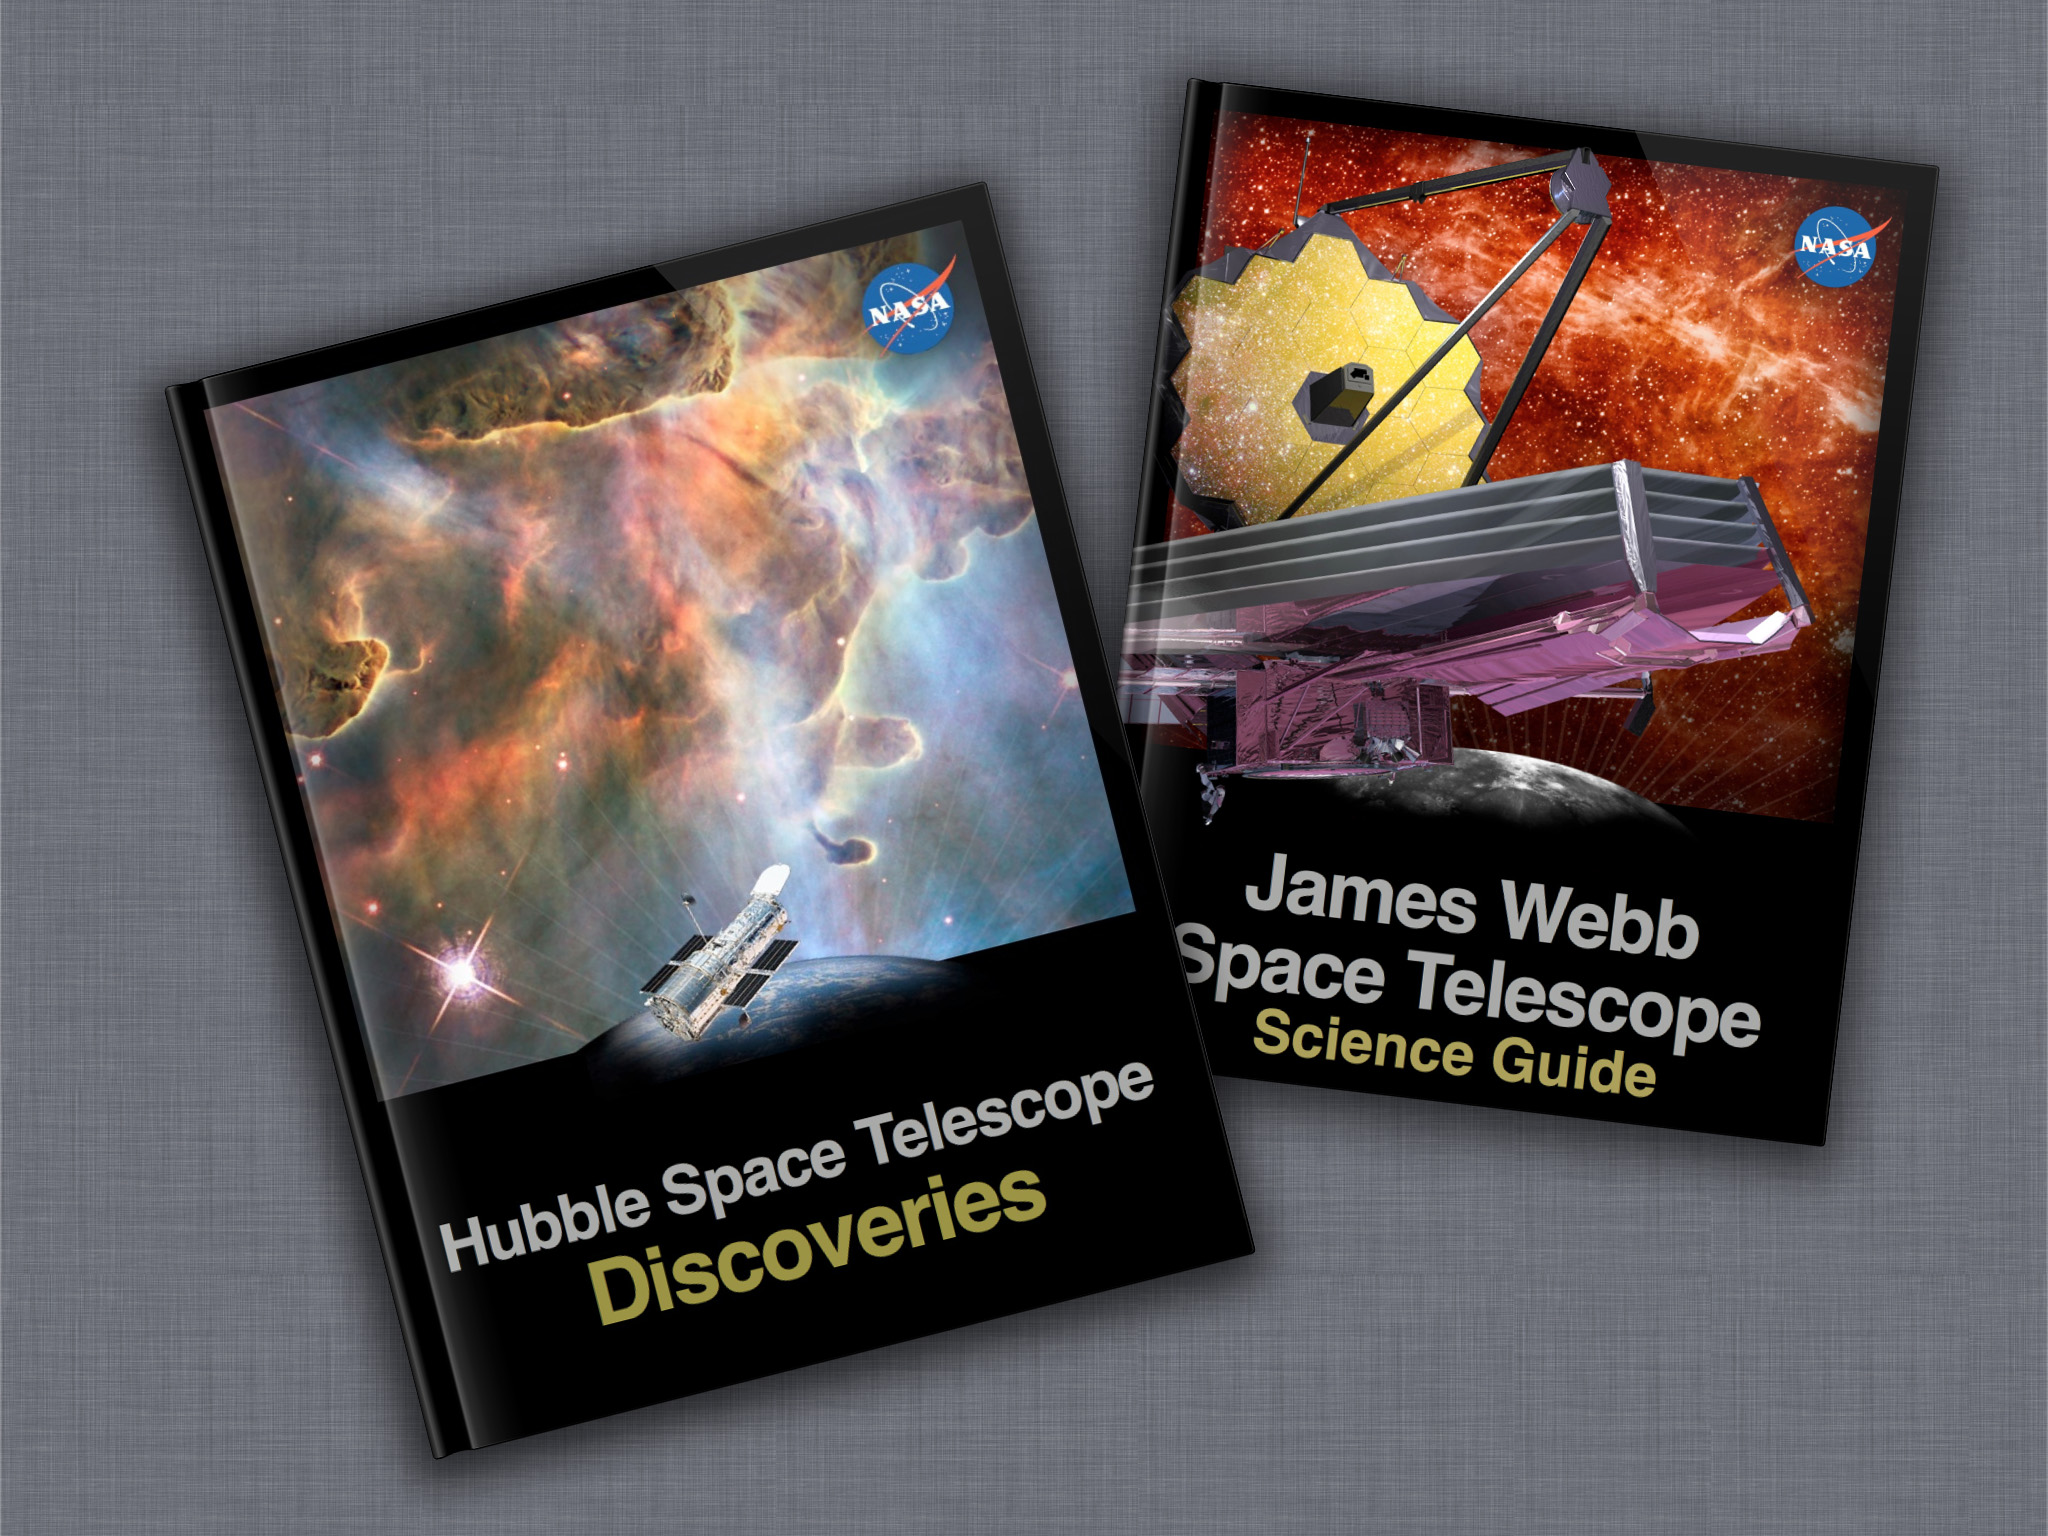 Nasa new free e books available about 2 famous nasa space telescopes composite image of hubble and webb e book covers fandeluxe Choice Image